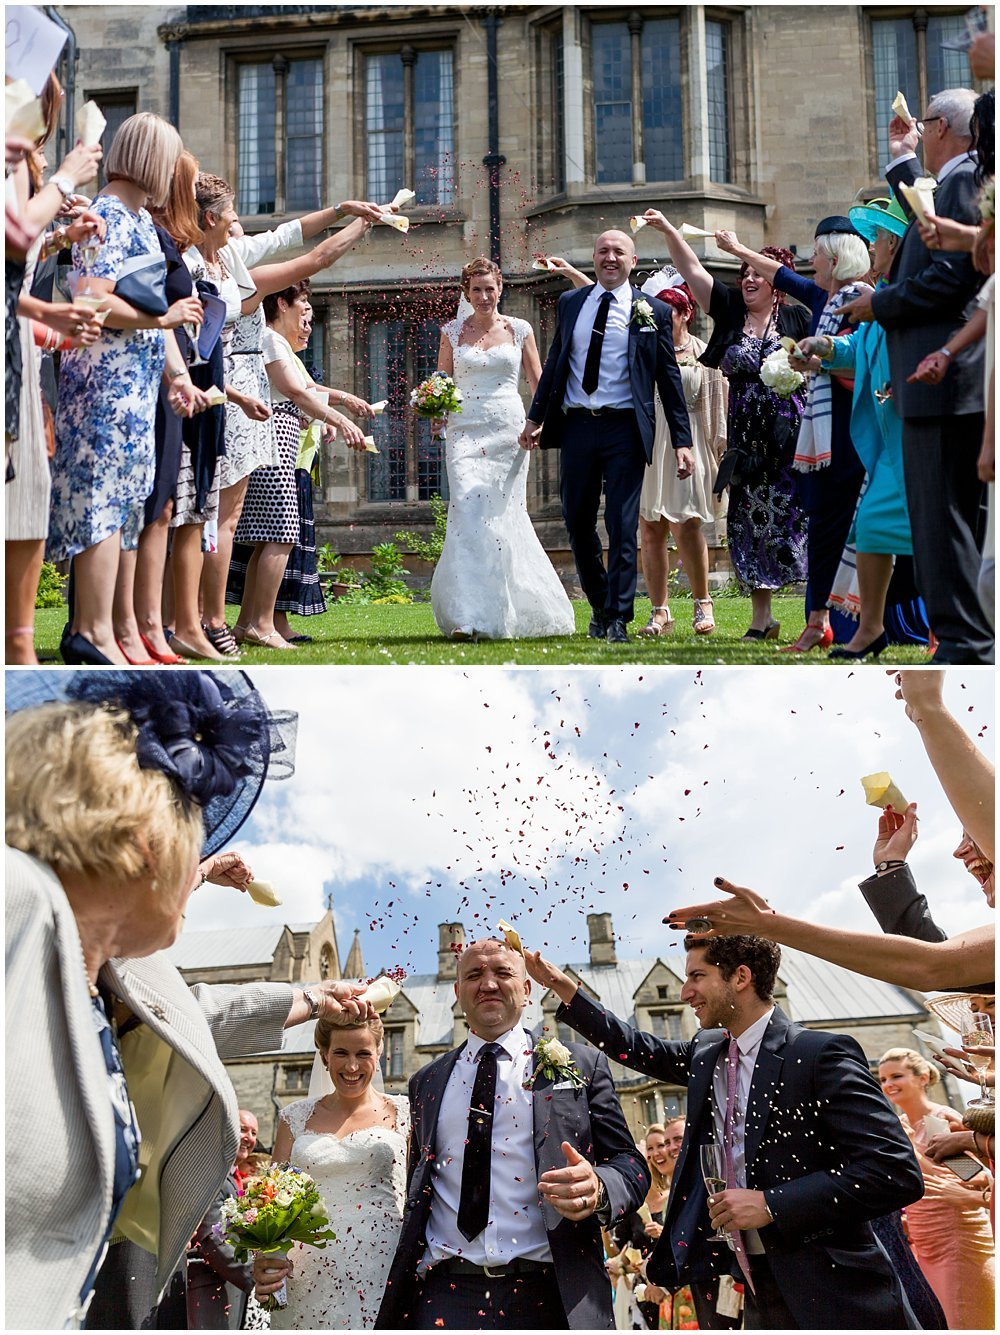 AMY AND DUNCAN NORWICH CATHEDRAL AND THE BOATHOUSE WEDDING - NORWICH AND NORFOLK WEDDING PHOTOGRAPHER 23